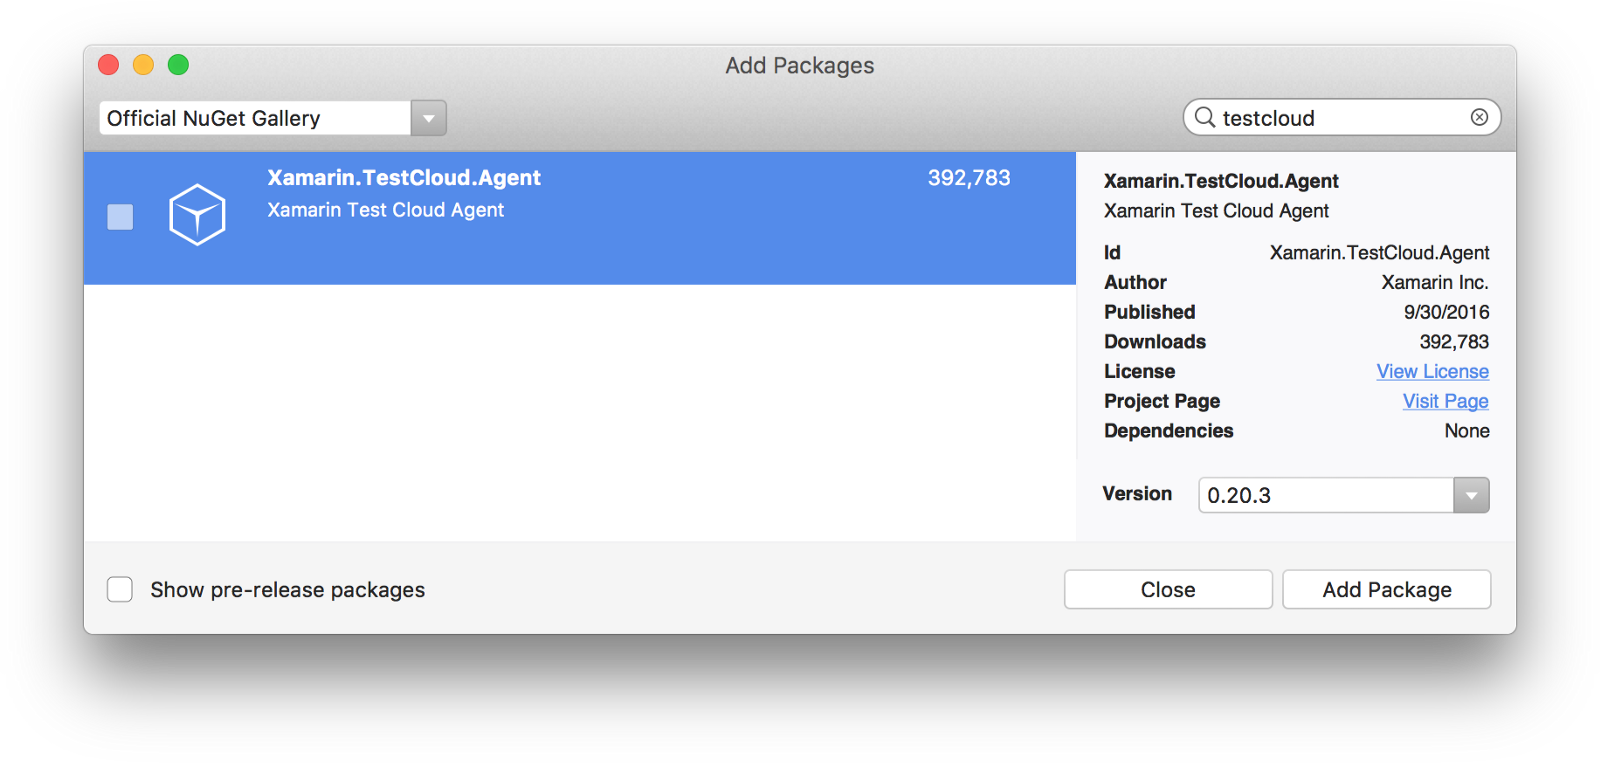 Adding the Xamarin Test Cloud Agent NuGet package